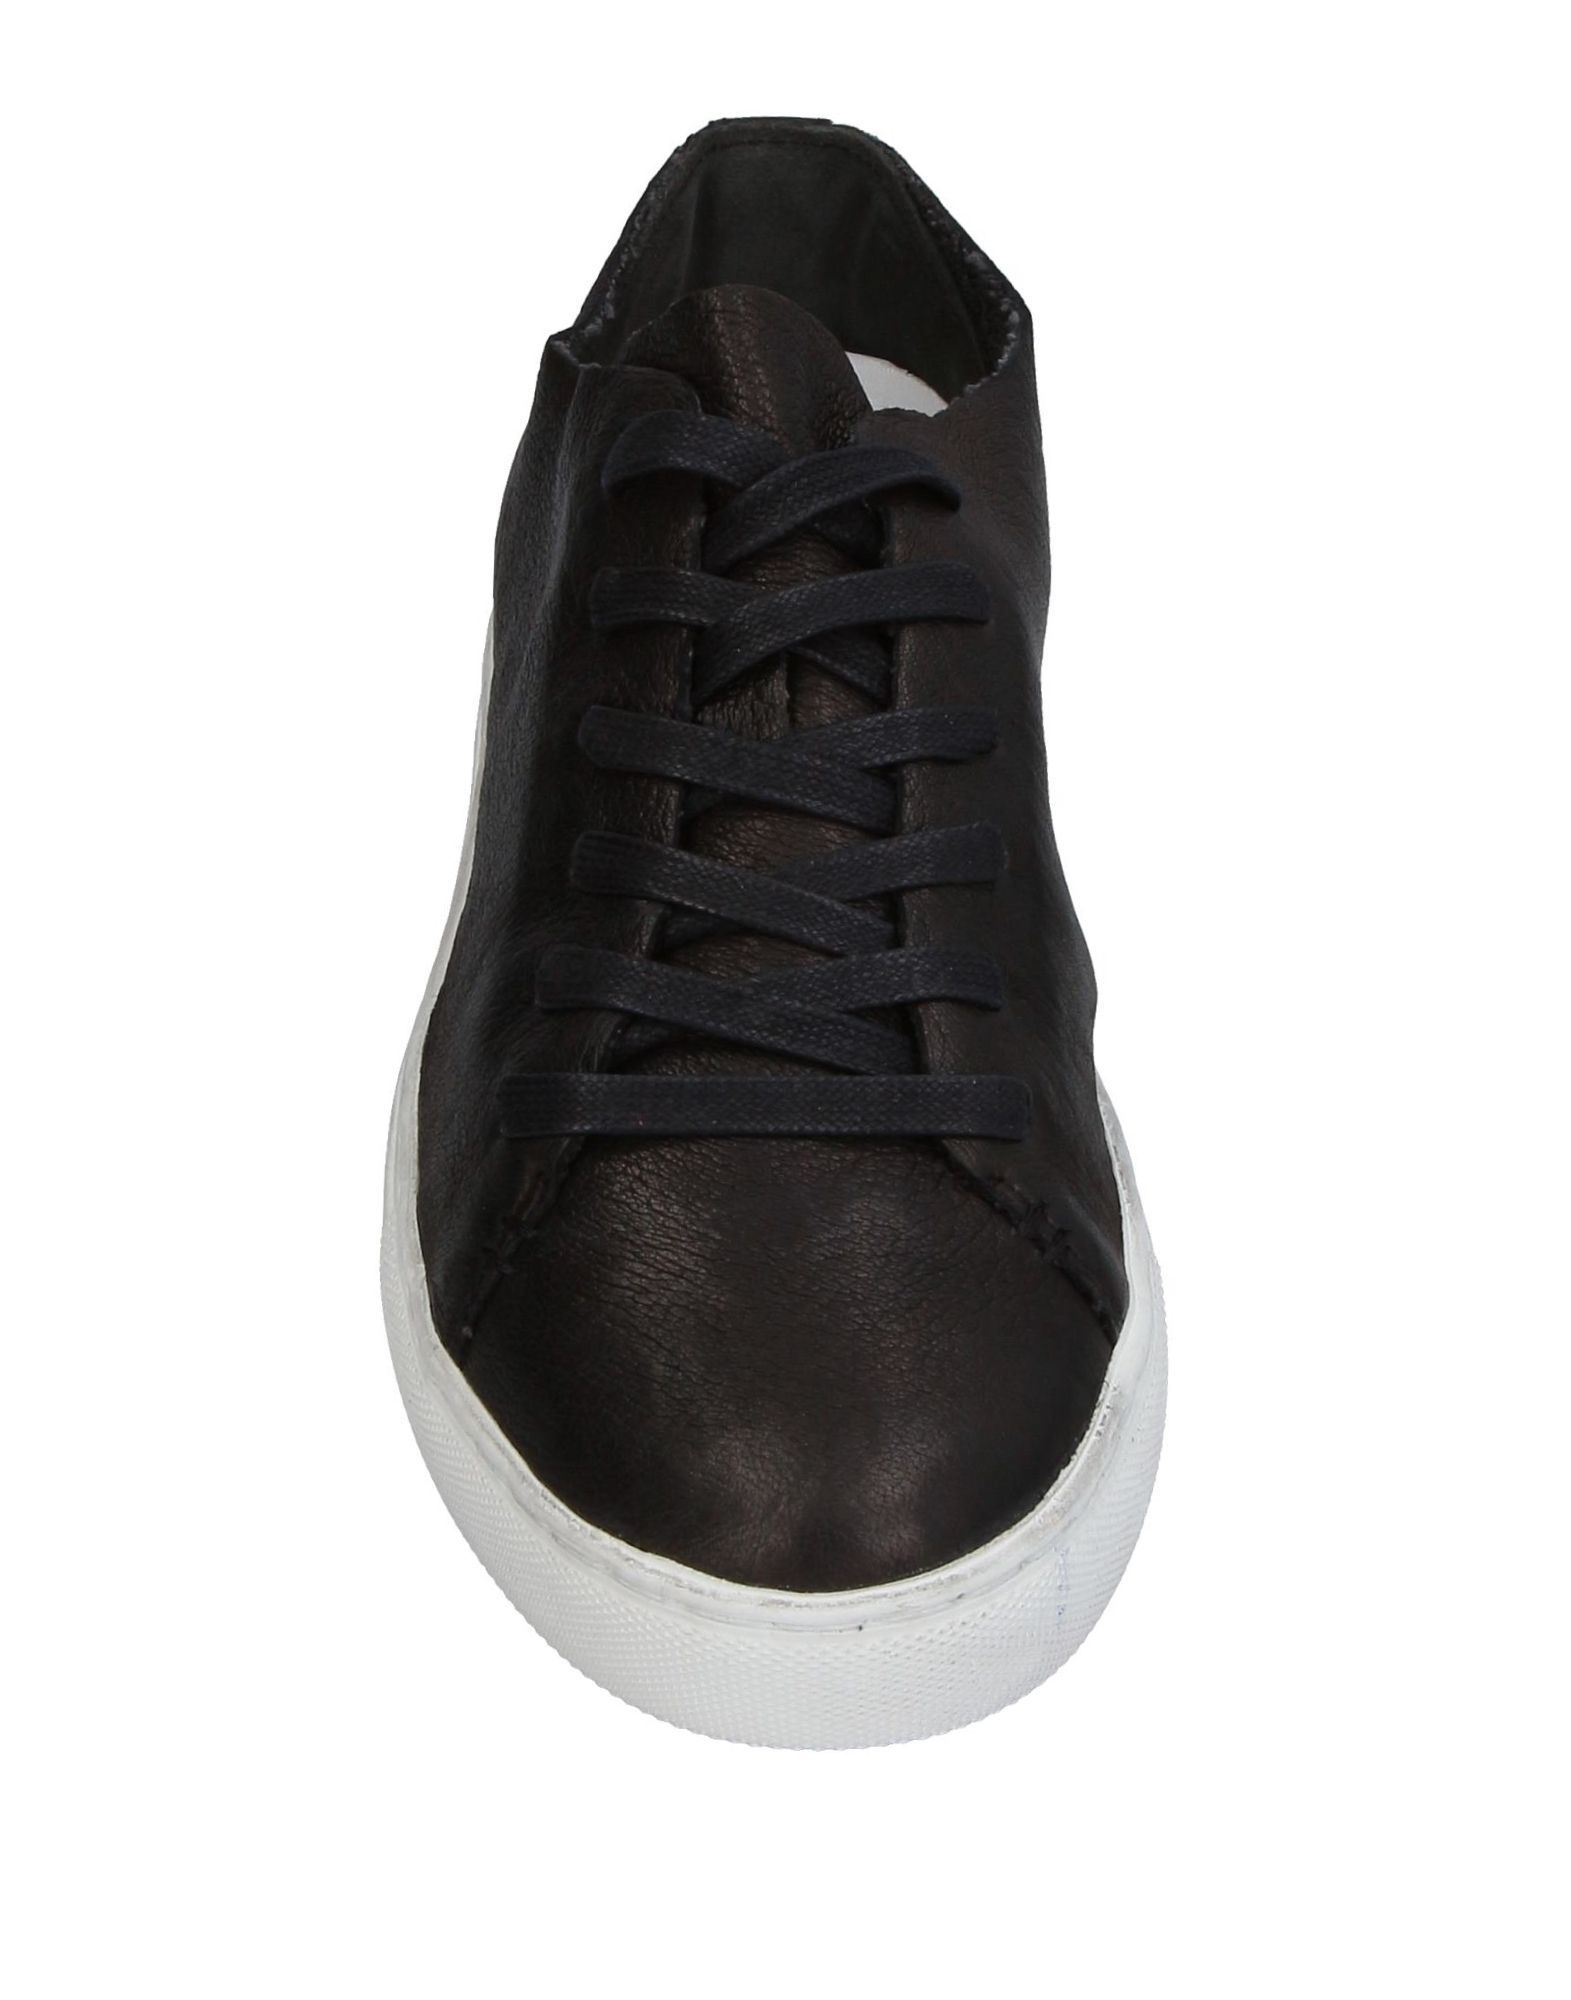 Crime London Black Leather Sneakers